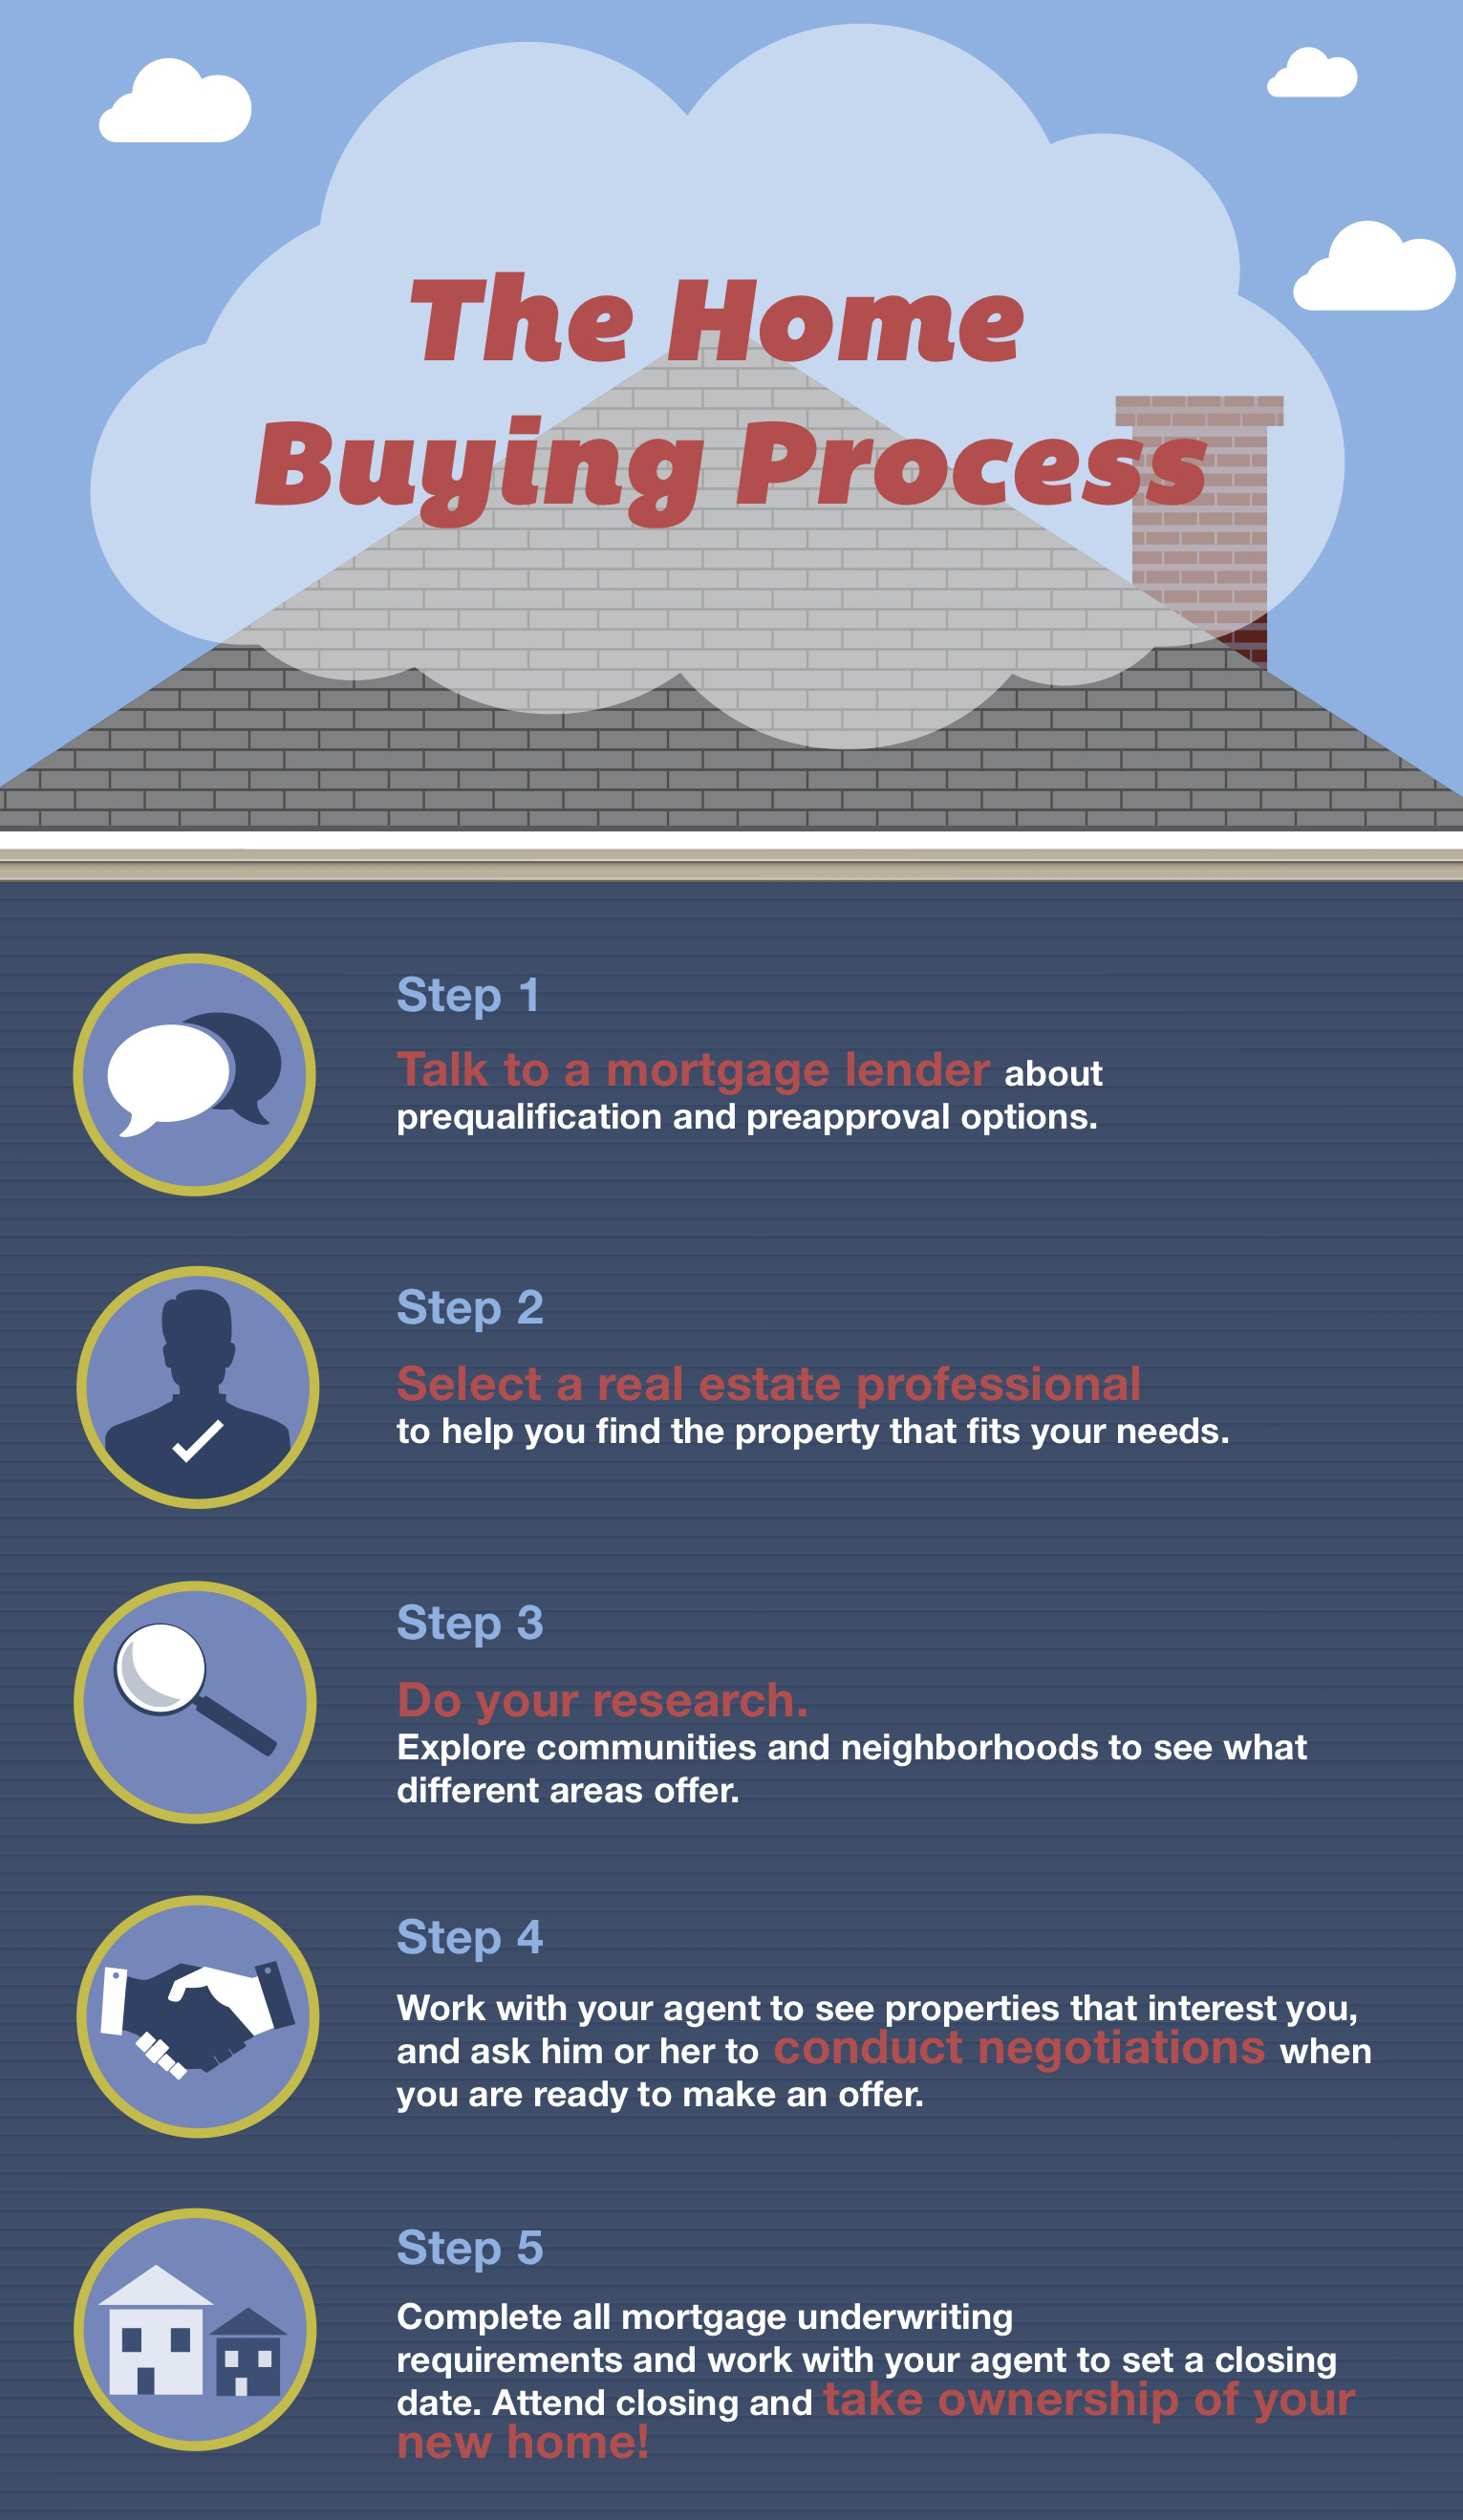 How does purchasing a house work?